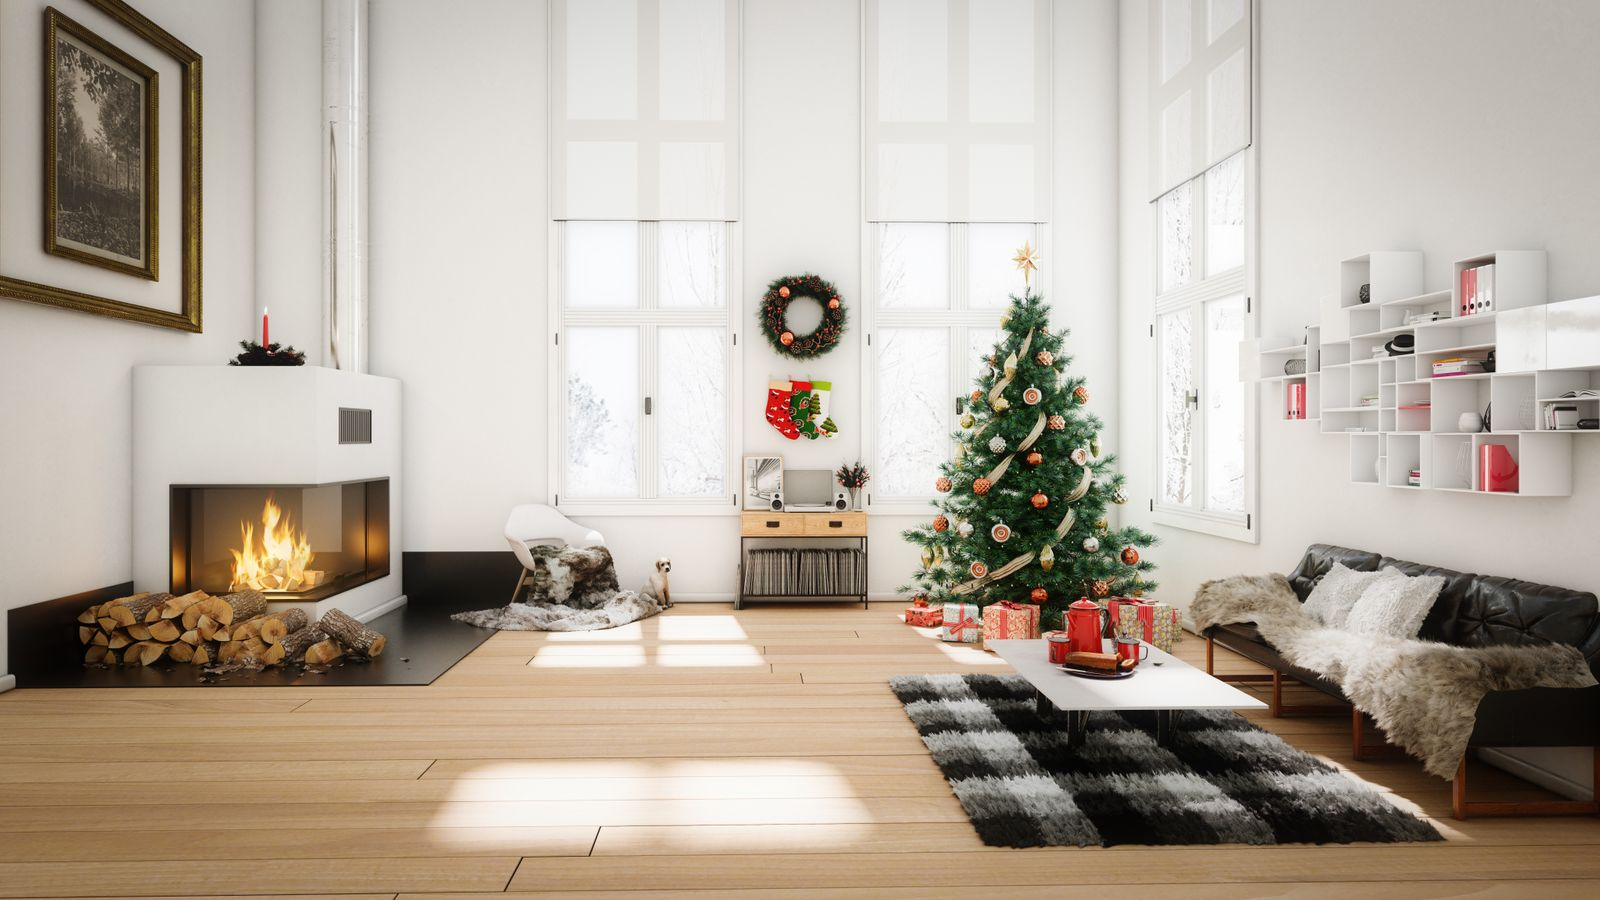 Contemporary room decorated for Christmas